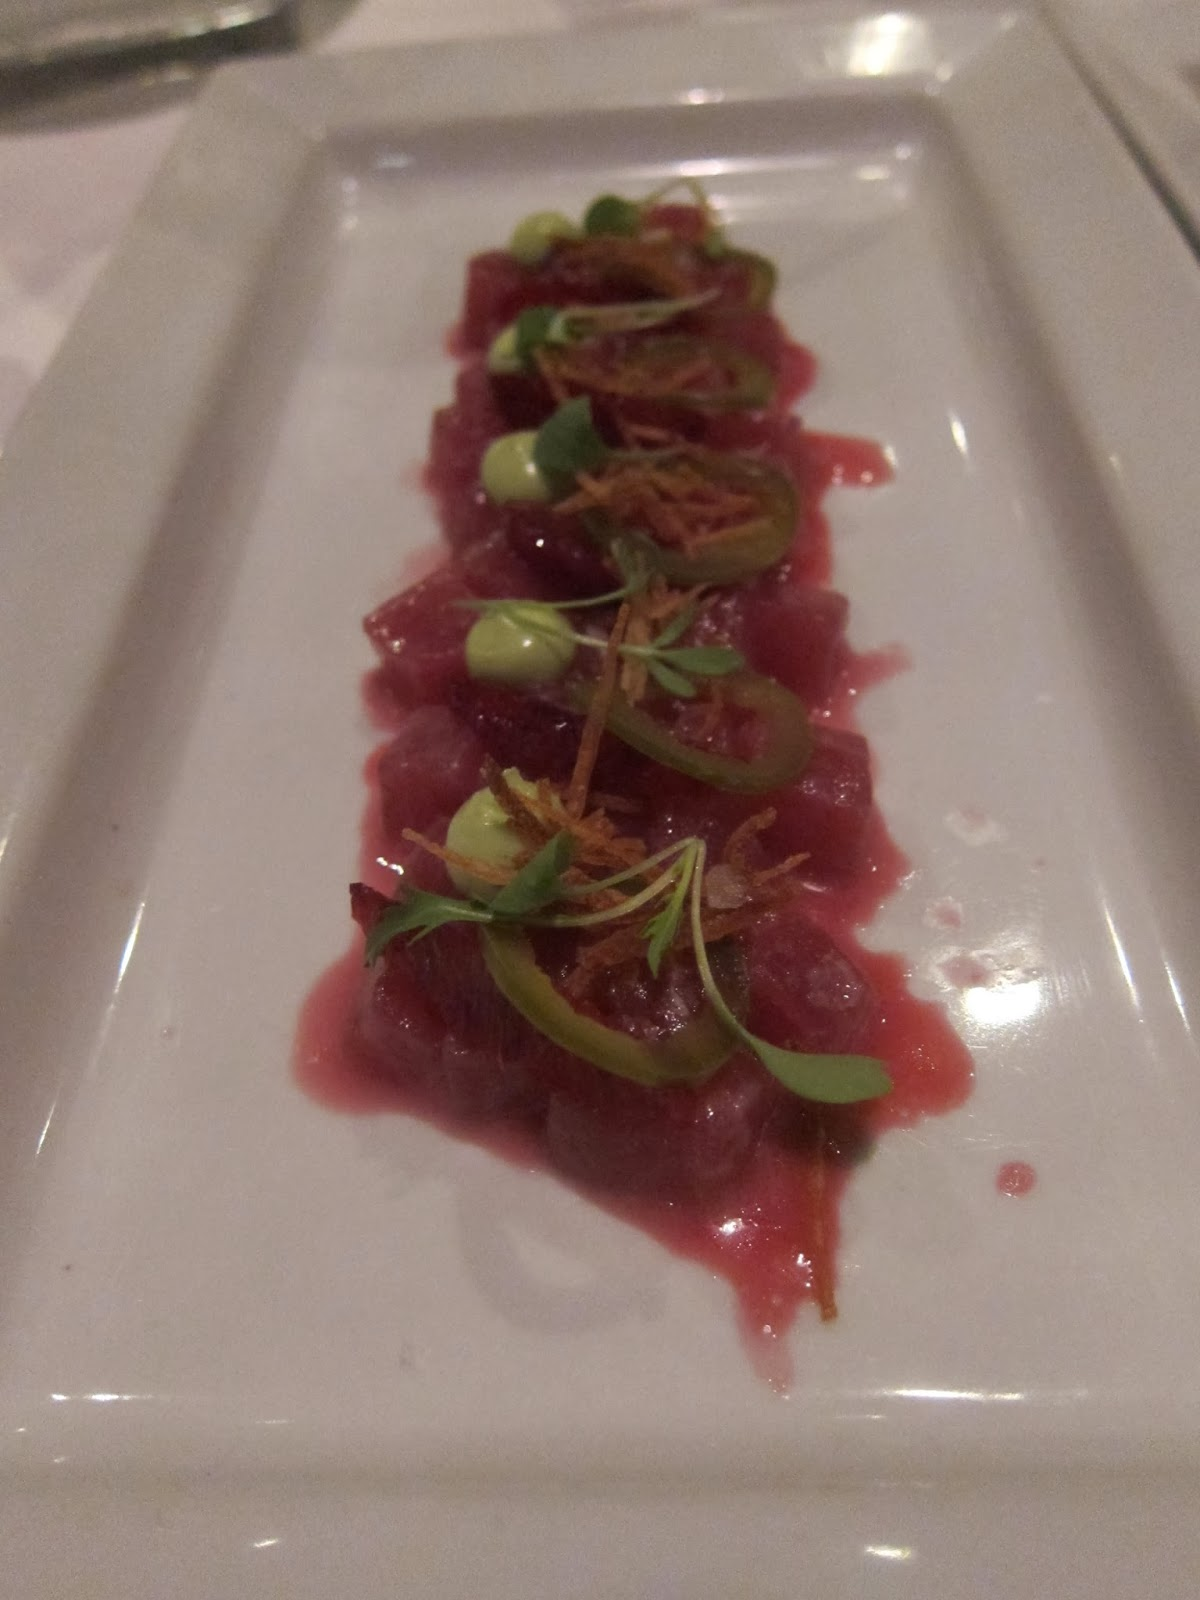 Ahi Tuna Ceviche at FISH Restaurant in Marlborough, MA | The Economical Eater